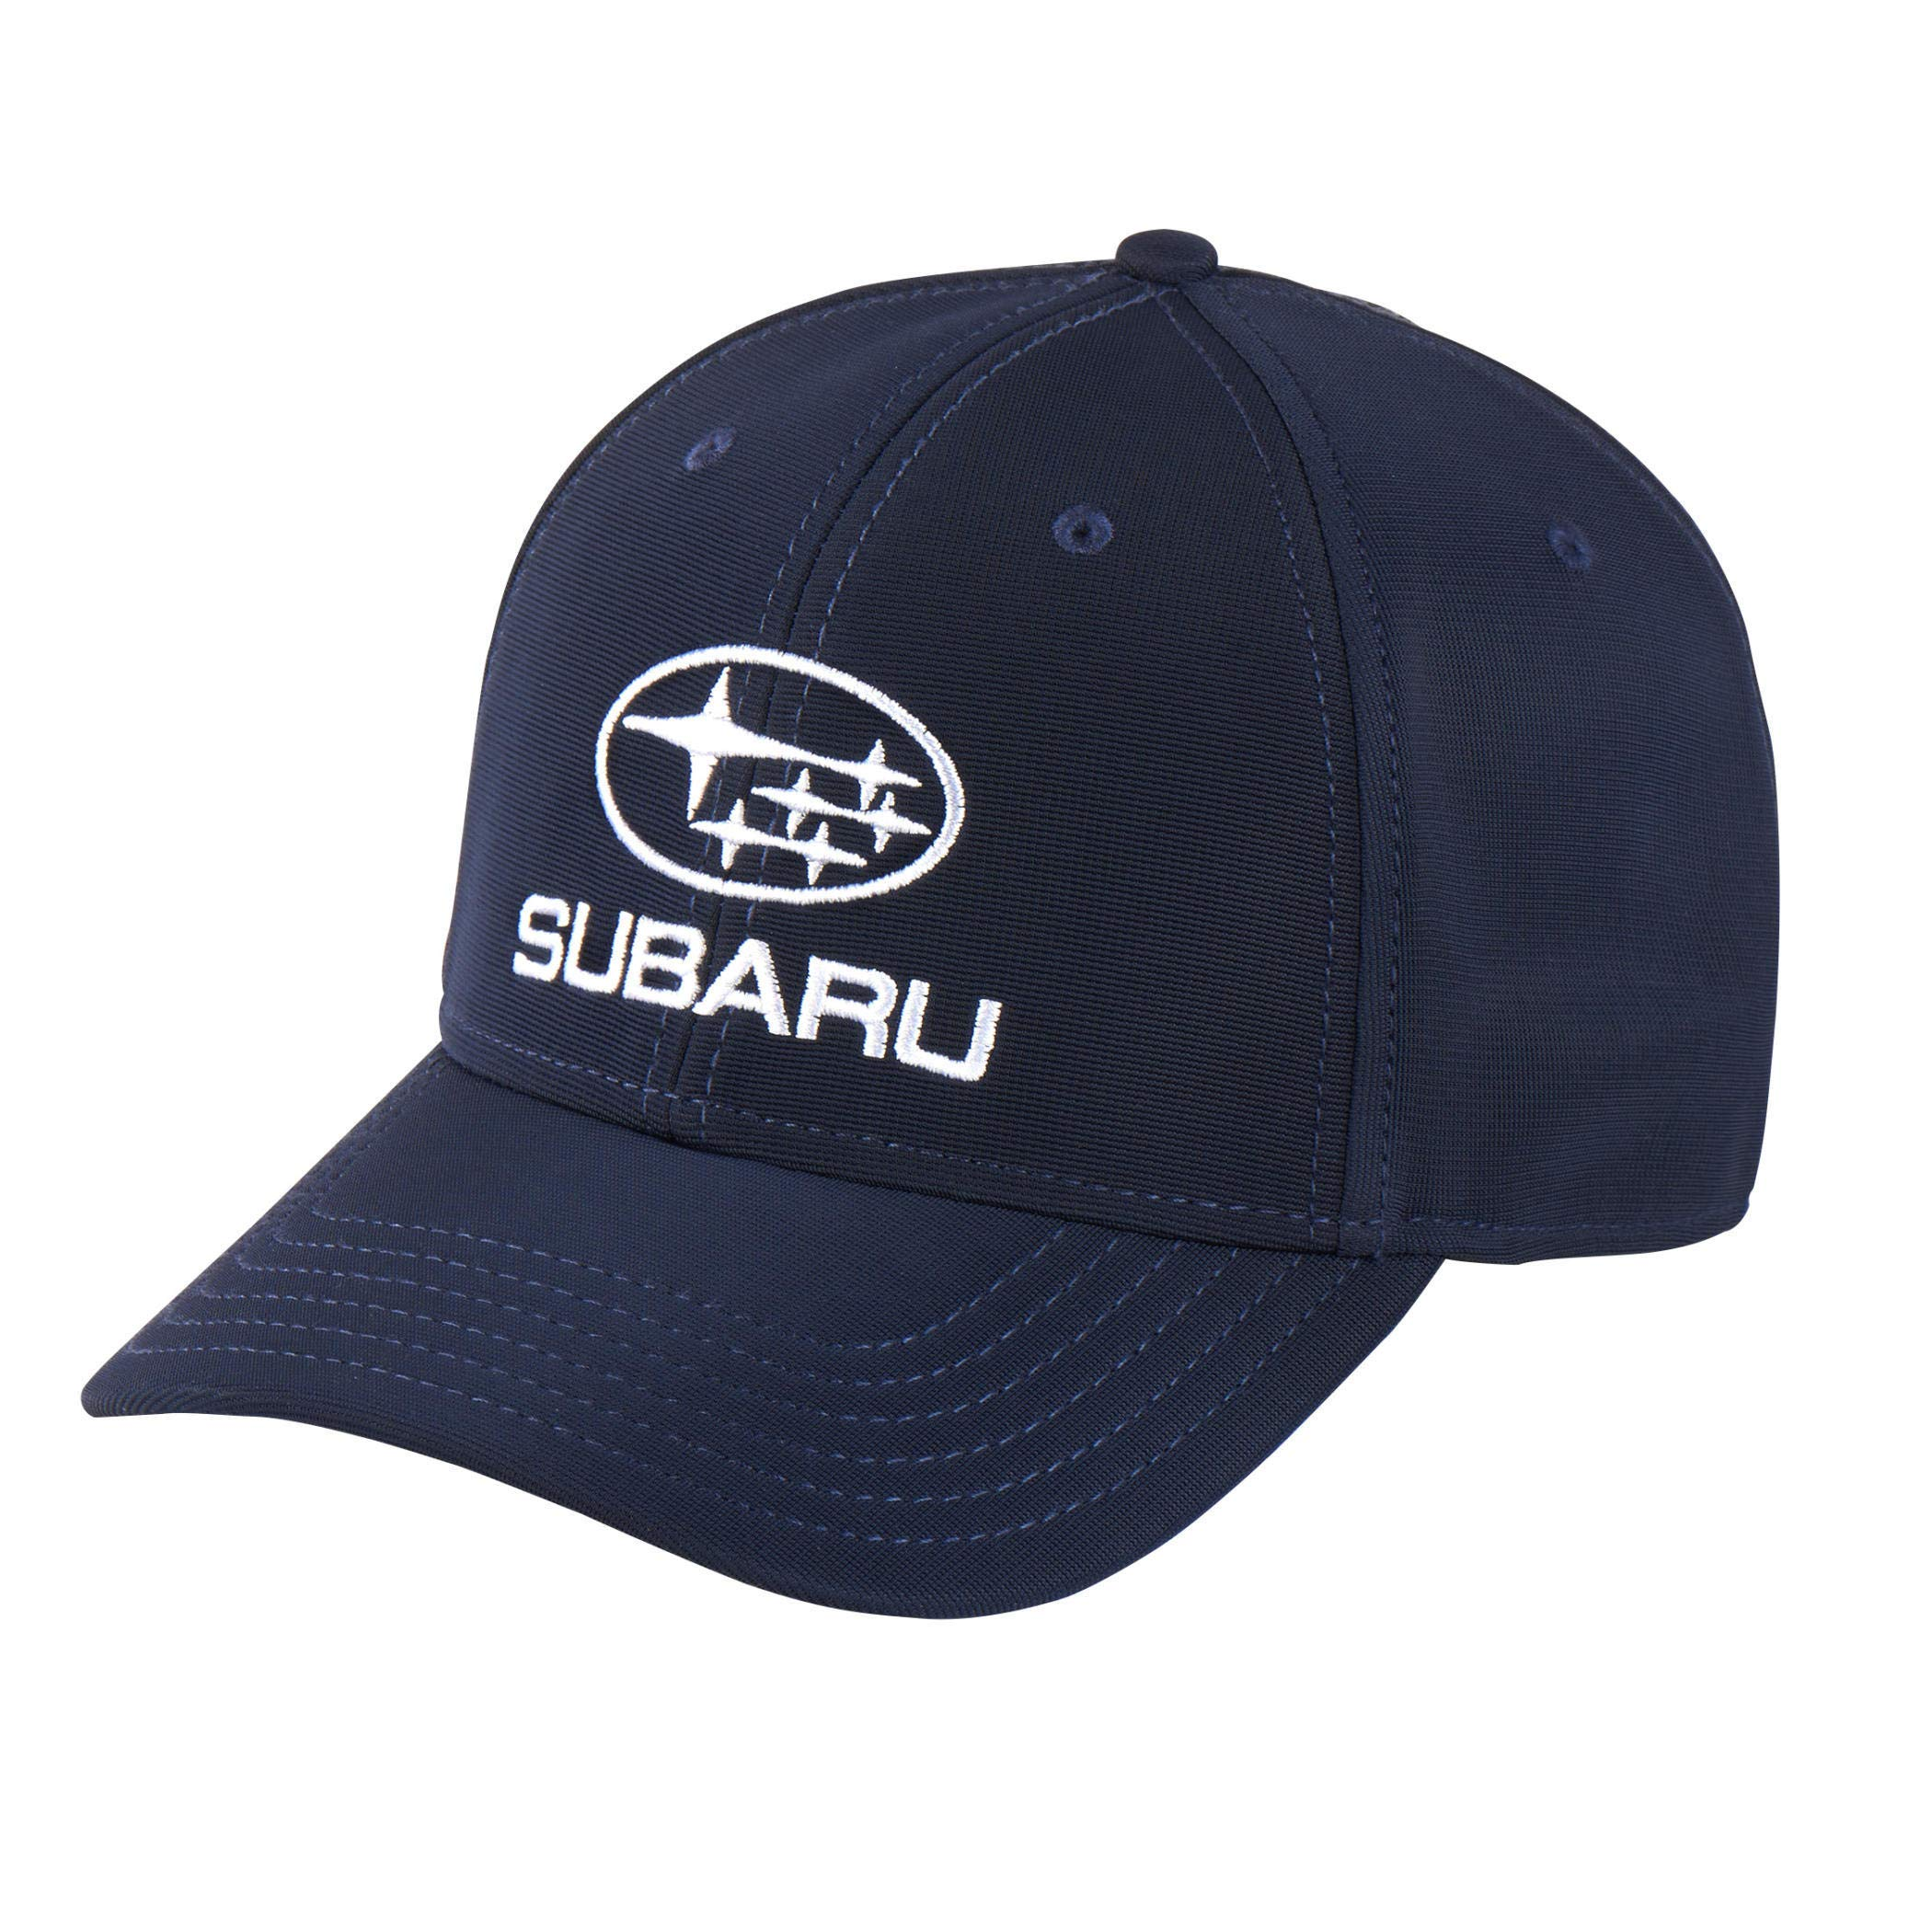 SUBARU Hat Genuine Luxe Performance Cap Hat Impreza STI WRX Forester Legacy Outback Ascent Crosstrek